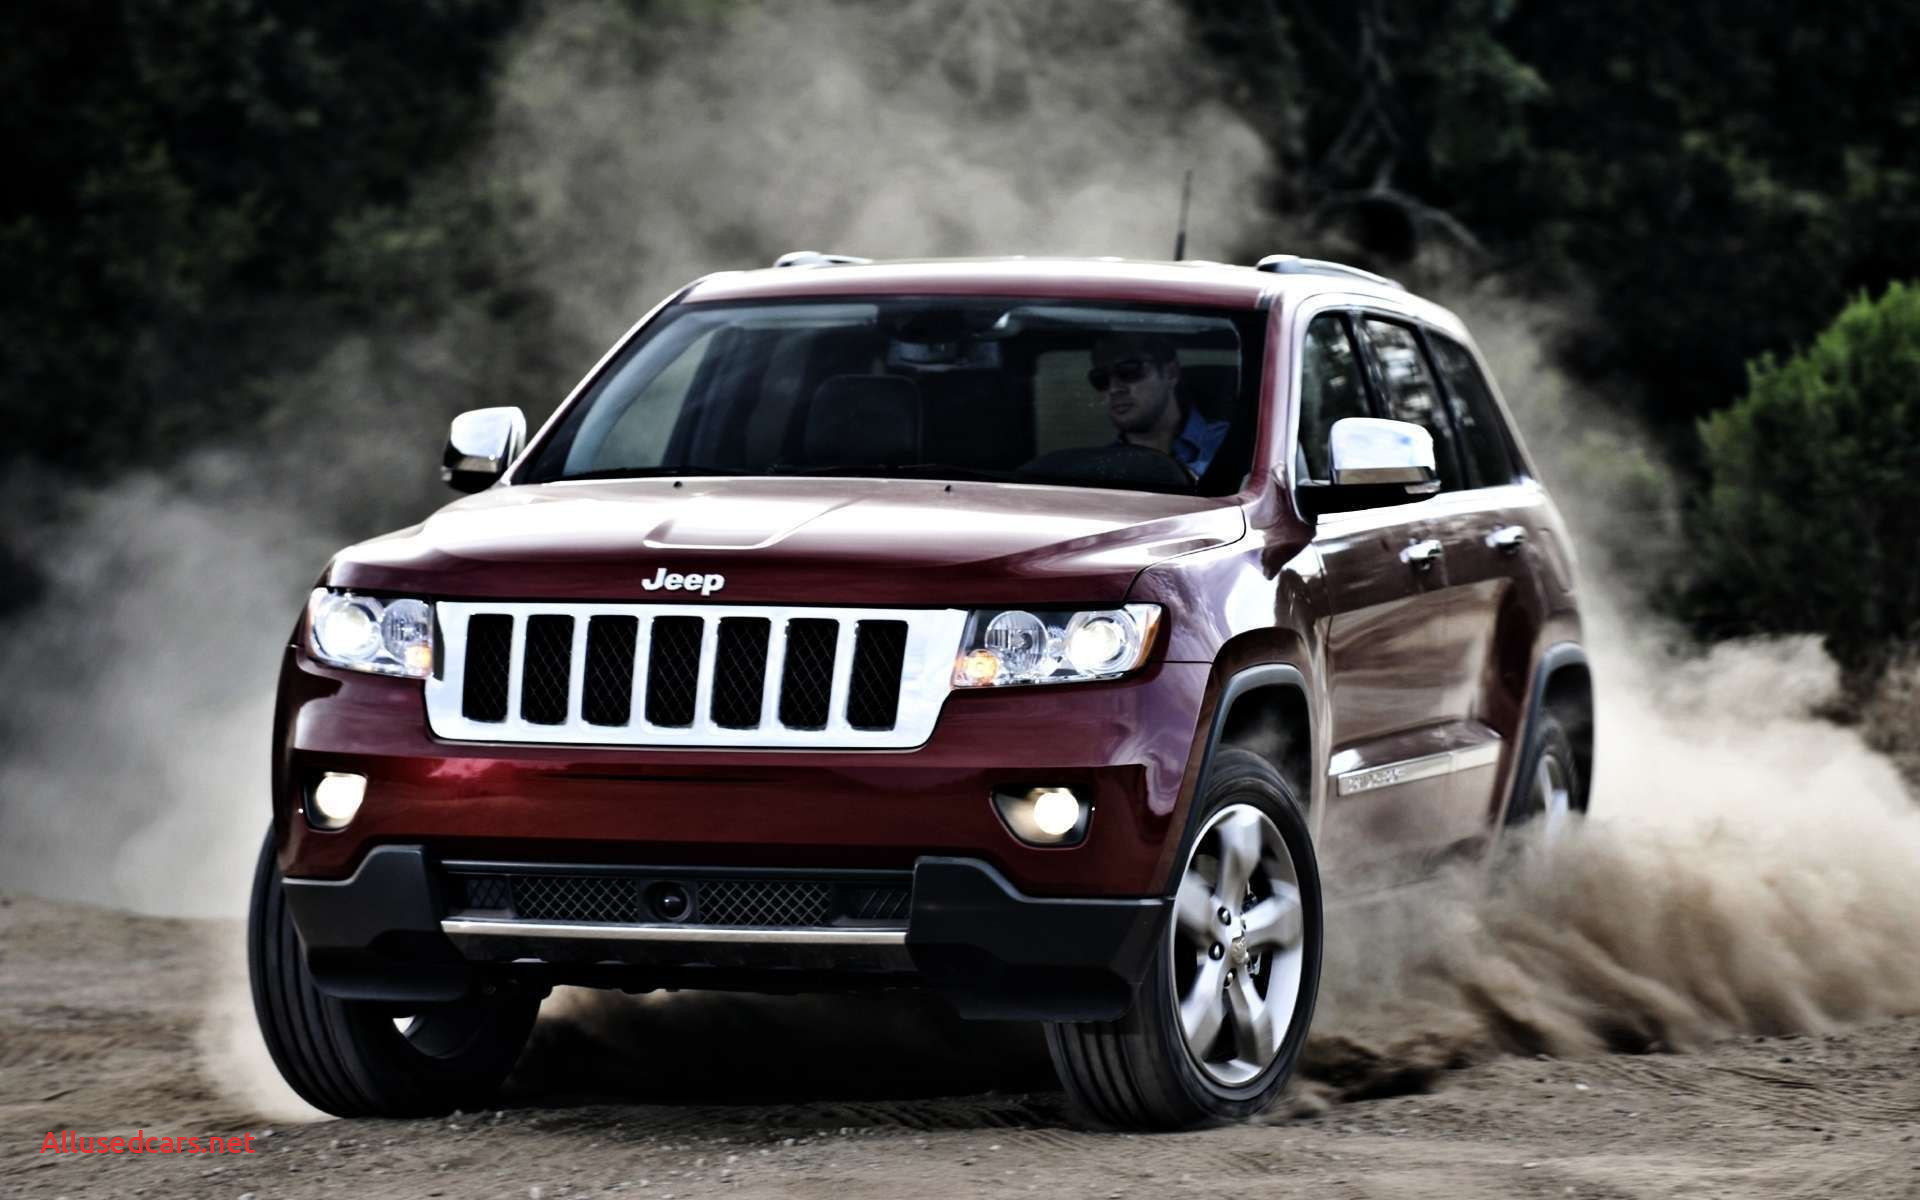 2014 Jeep Cherokee Elegant Pin by Hd Wallpapers On Bike & Cars Wallpapers